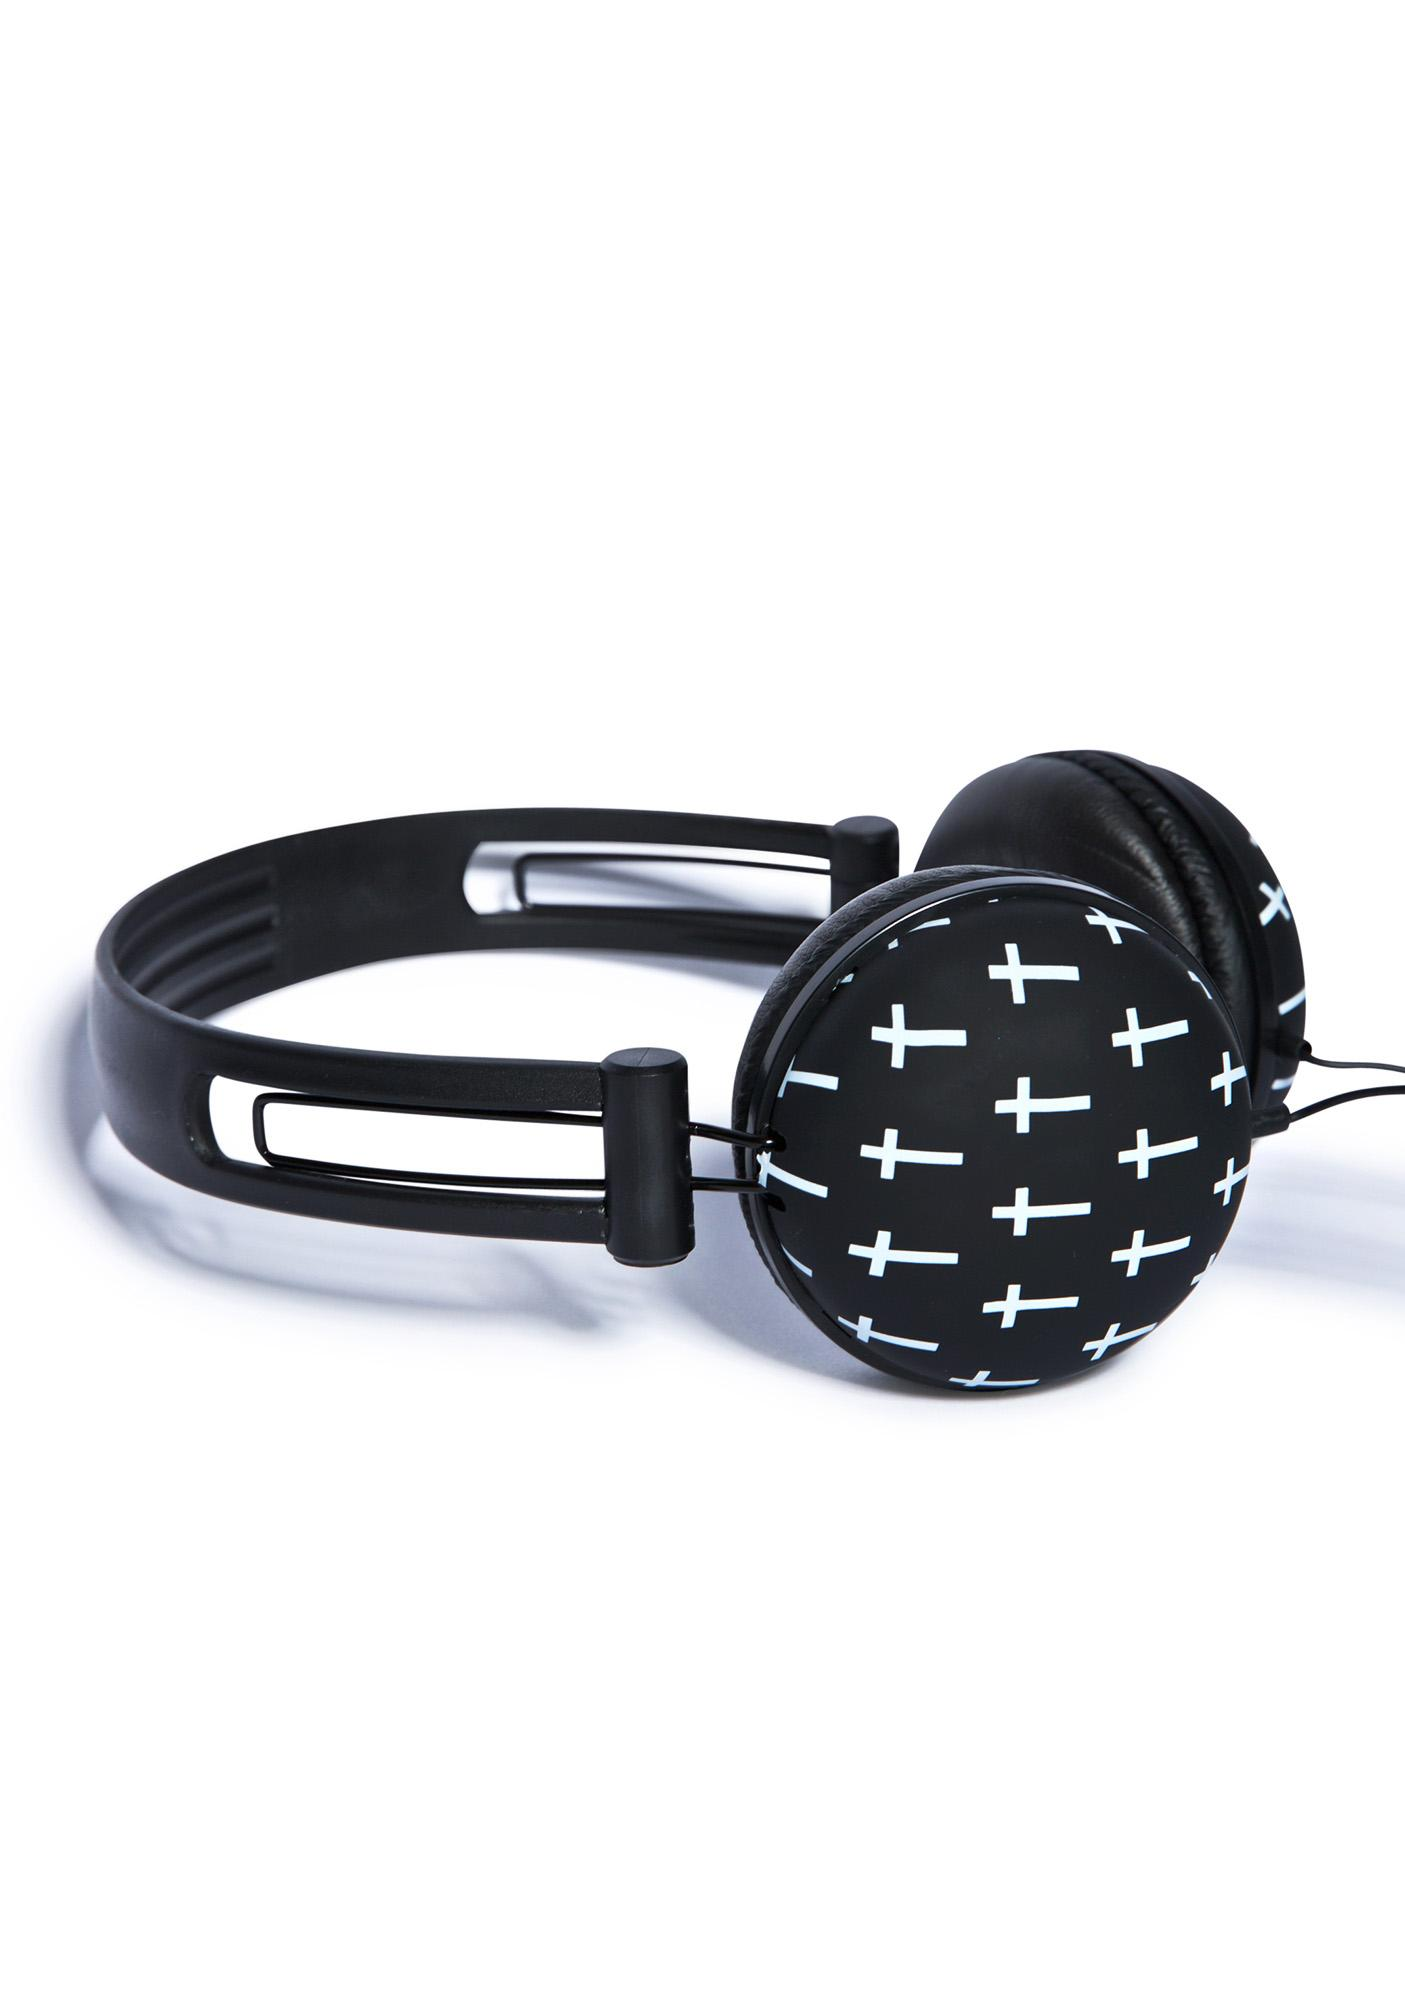 Have Mercy Headphones